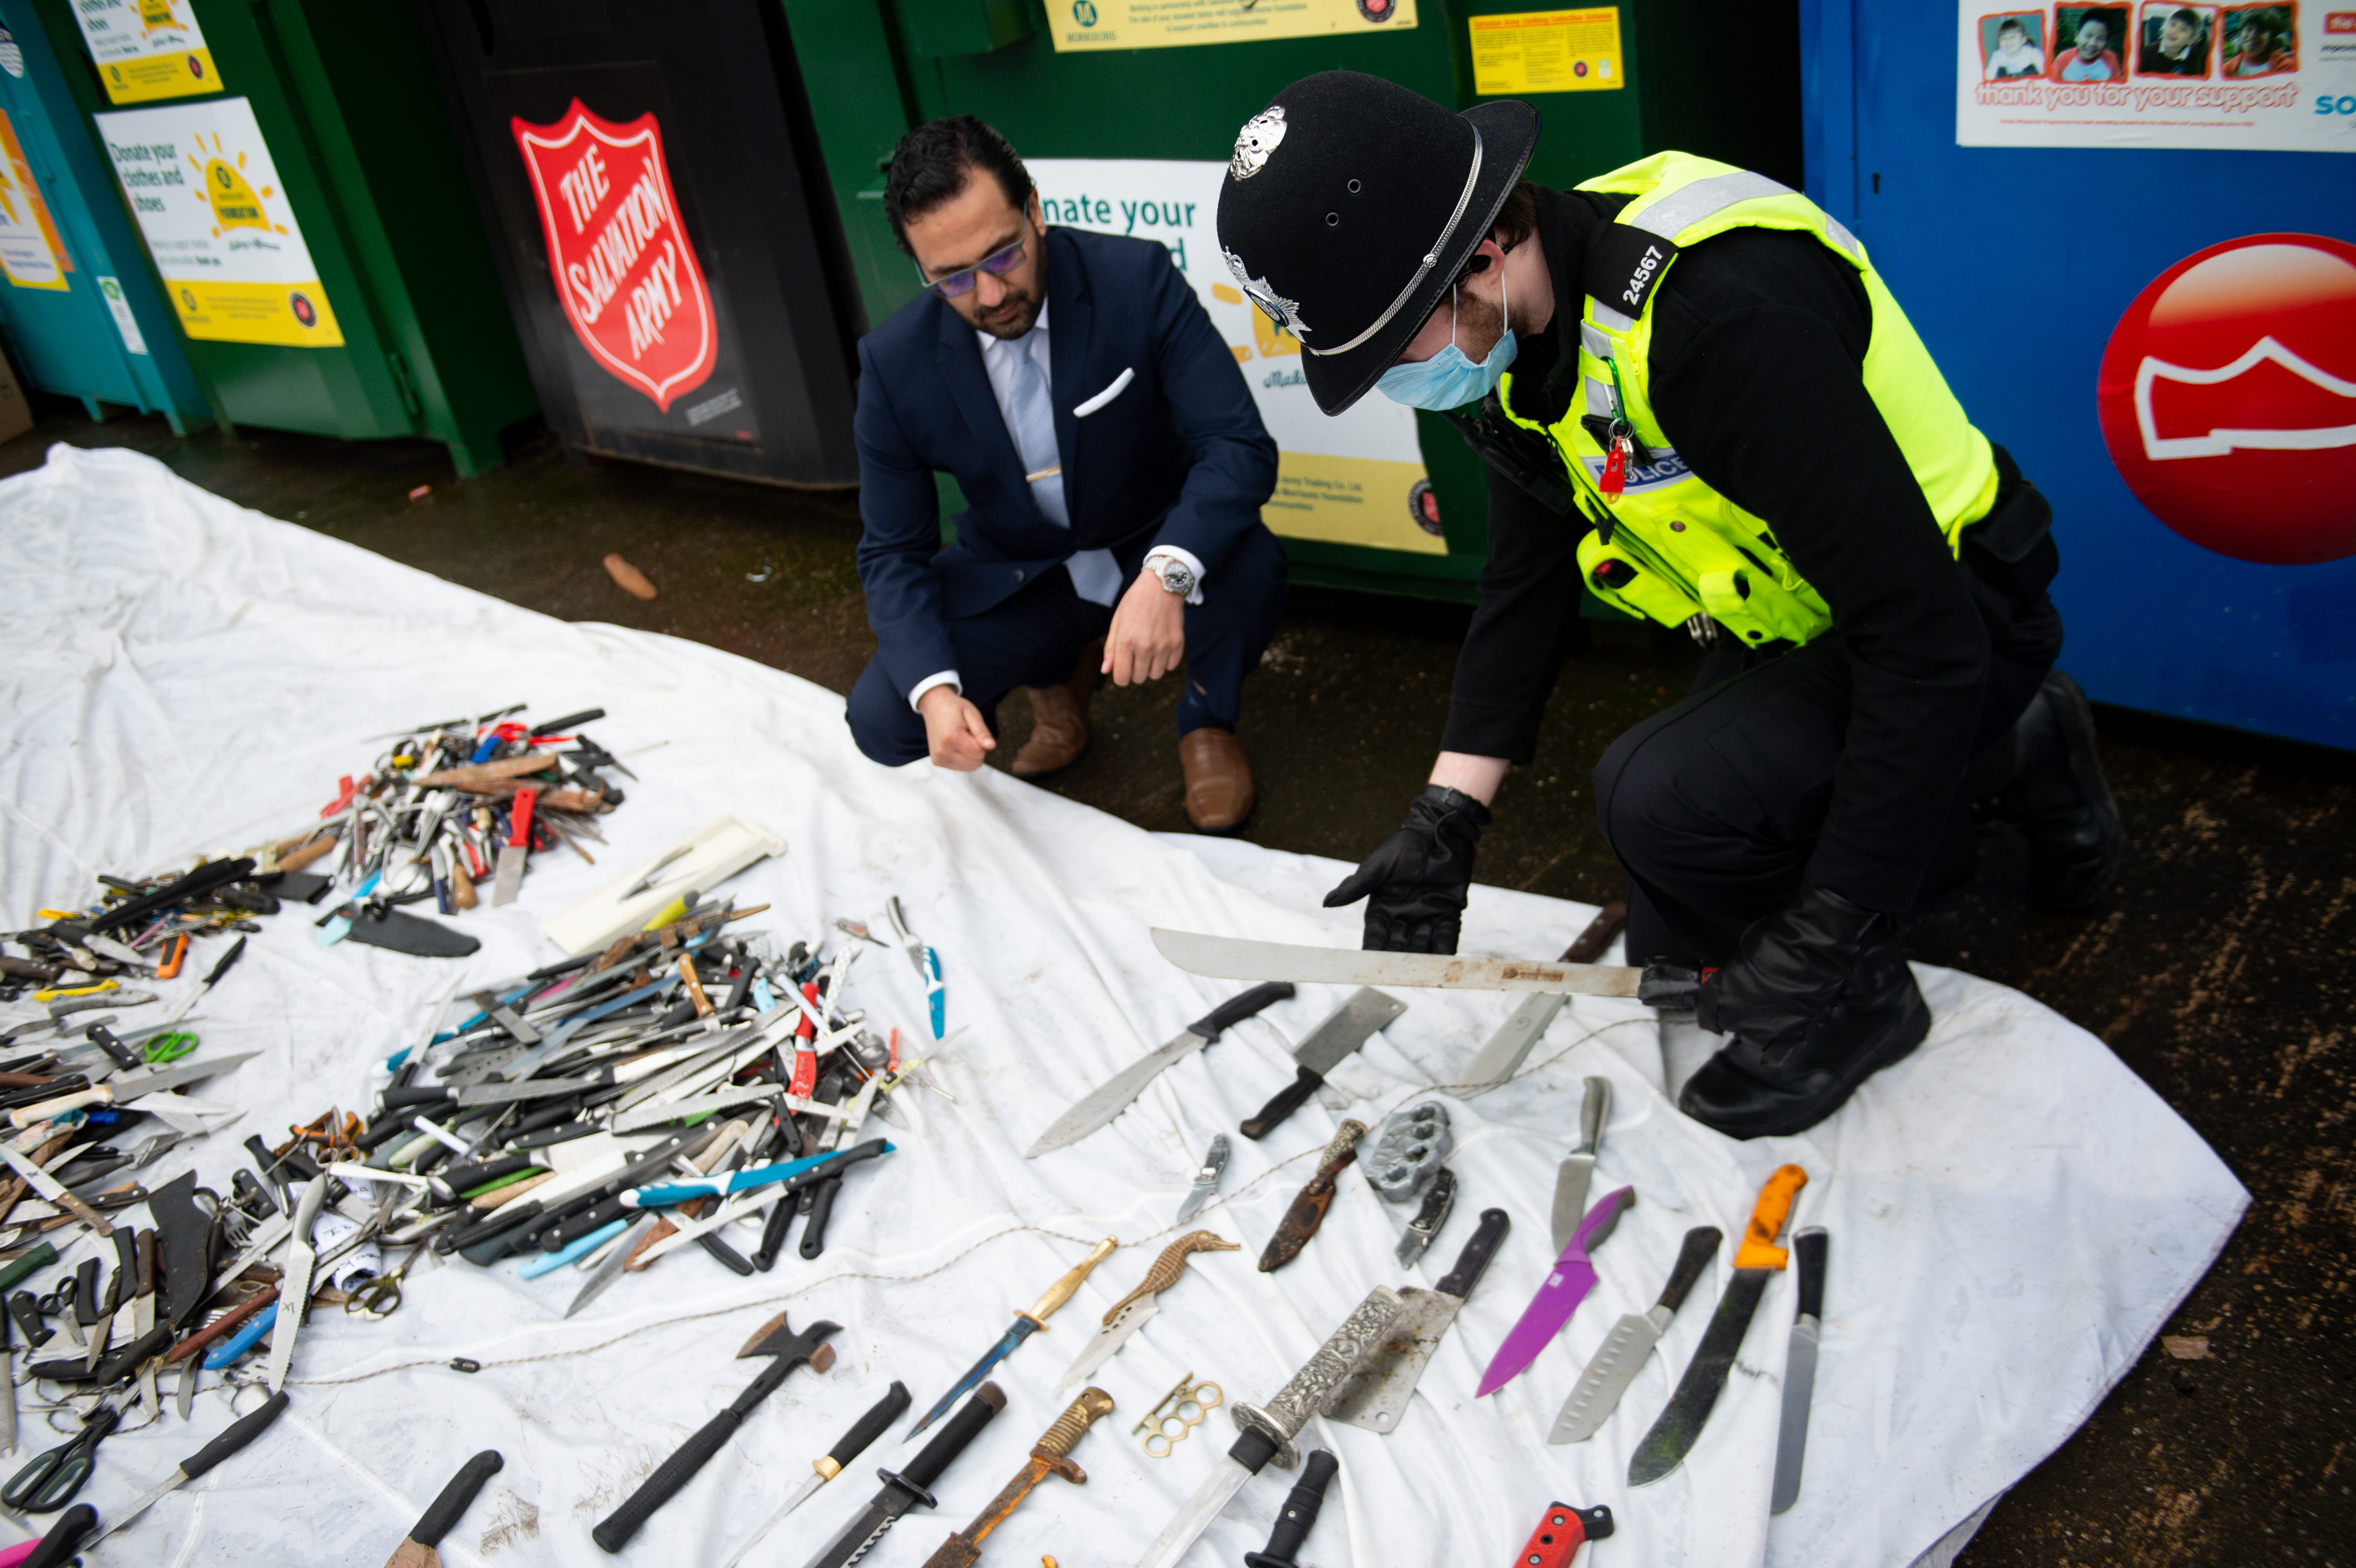 <p>West Midlands Deputy Police and Crime Commissioner, Waheed Saleem and a police officer showing the knives and other weapons that have been deposited into weapon surrender bins at Morrisons in Bilston, Wolverhampton. Picture date: Friday March 19, 2021.</p>